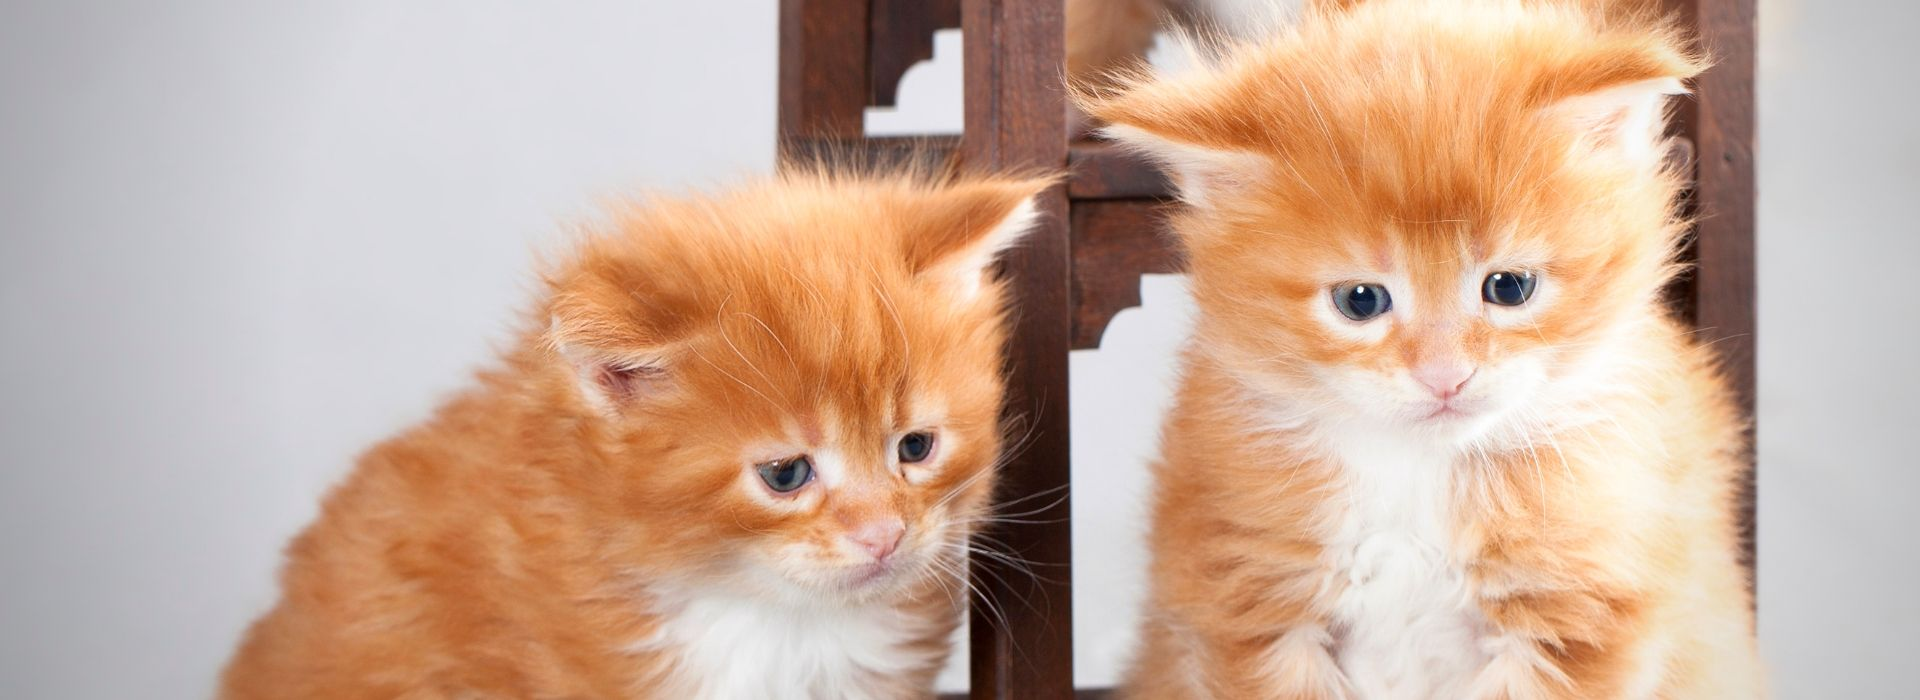 2 petits chatons Maine Coon Roux